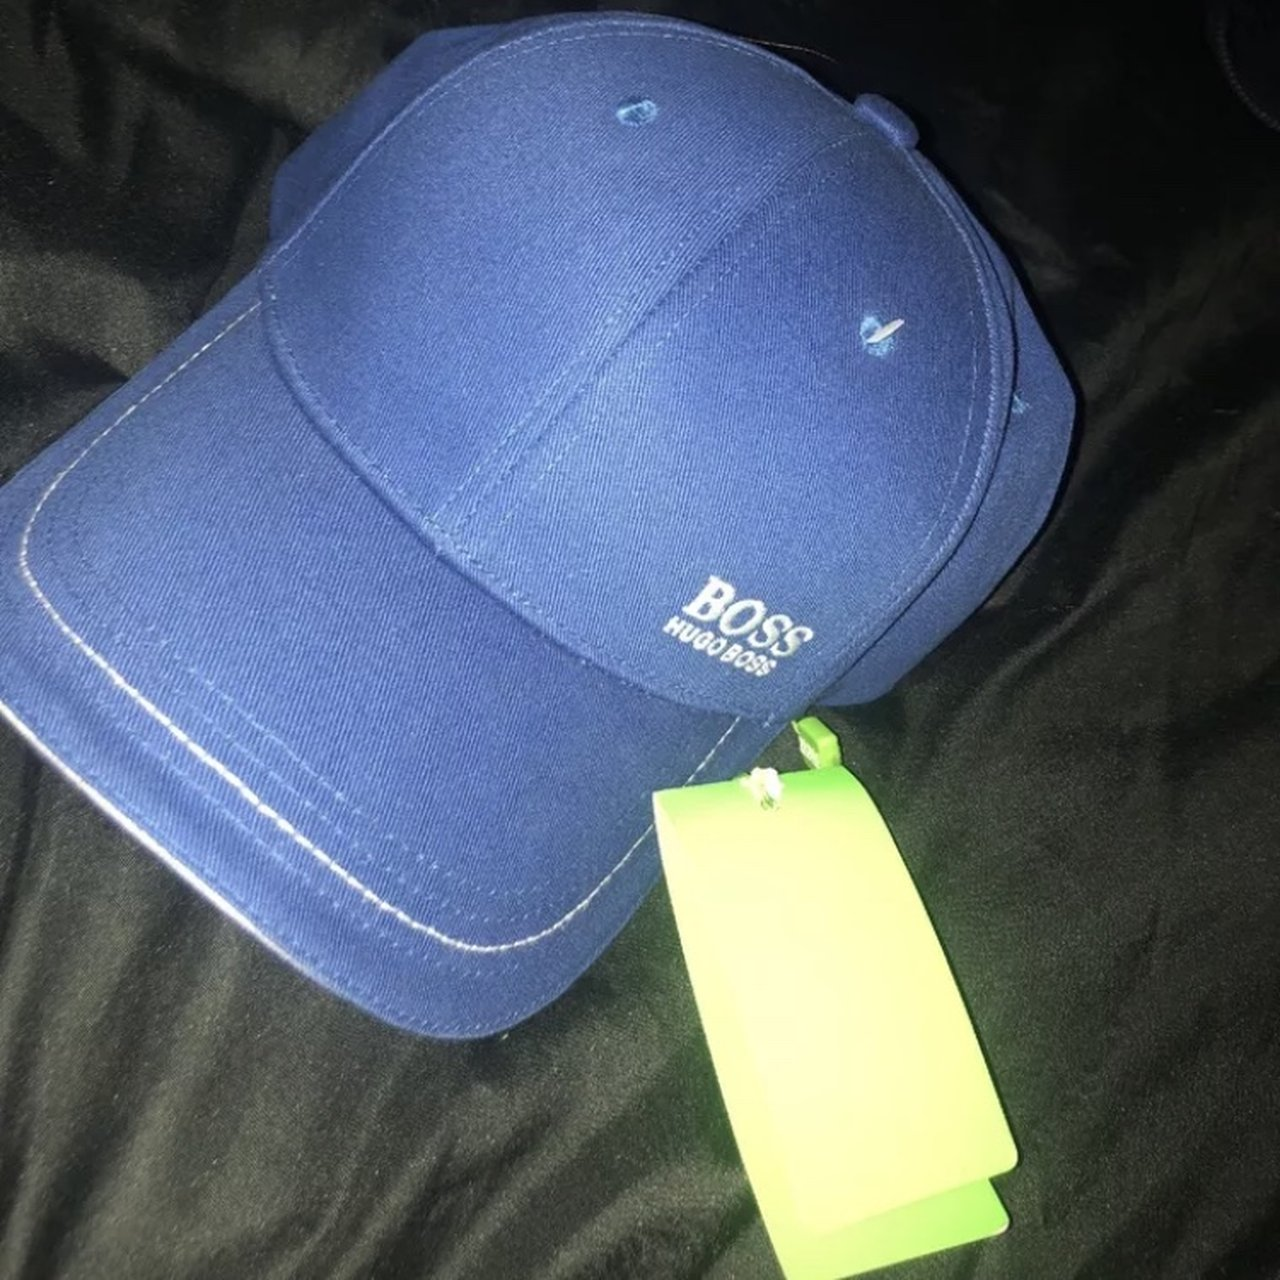 d8d9e91a59b Hugo boss cap One size fits all Never worn with tags Open to - Depop